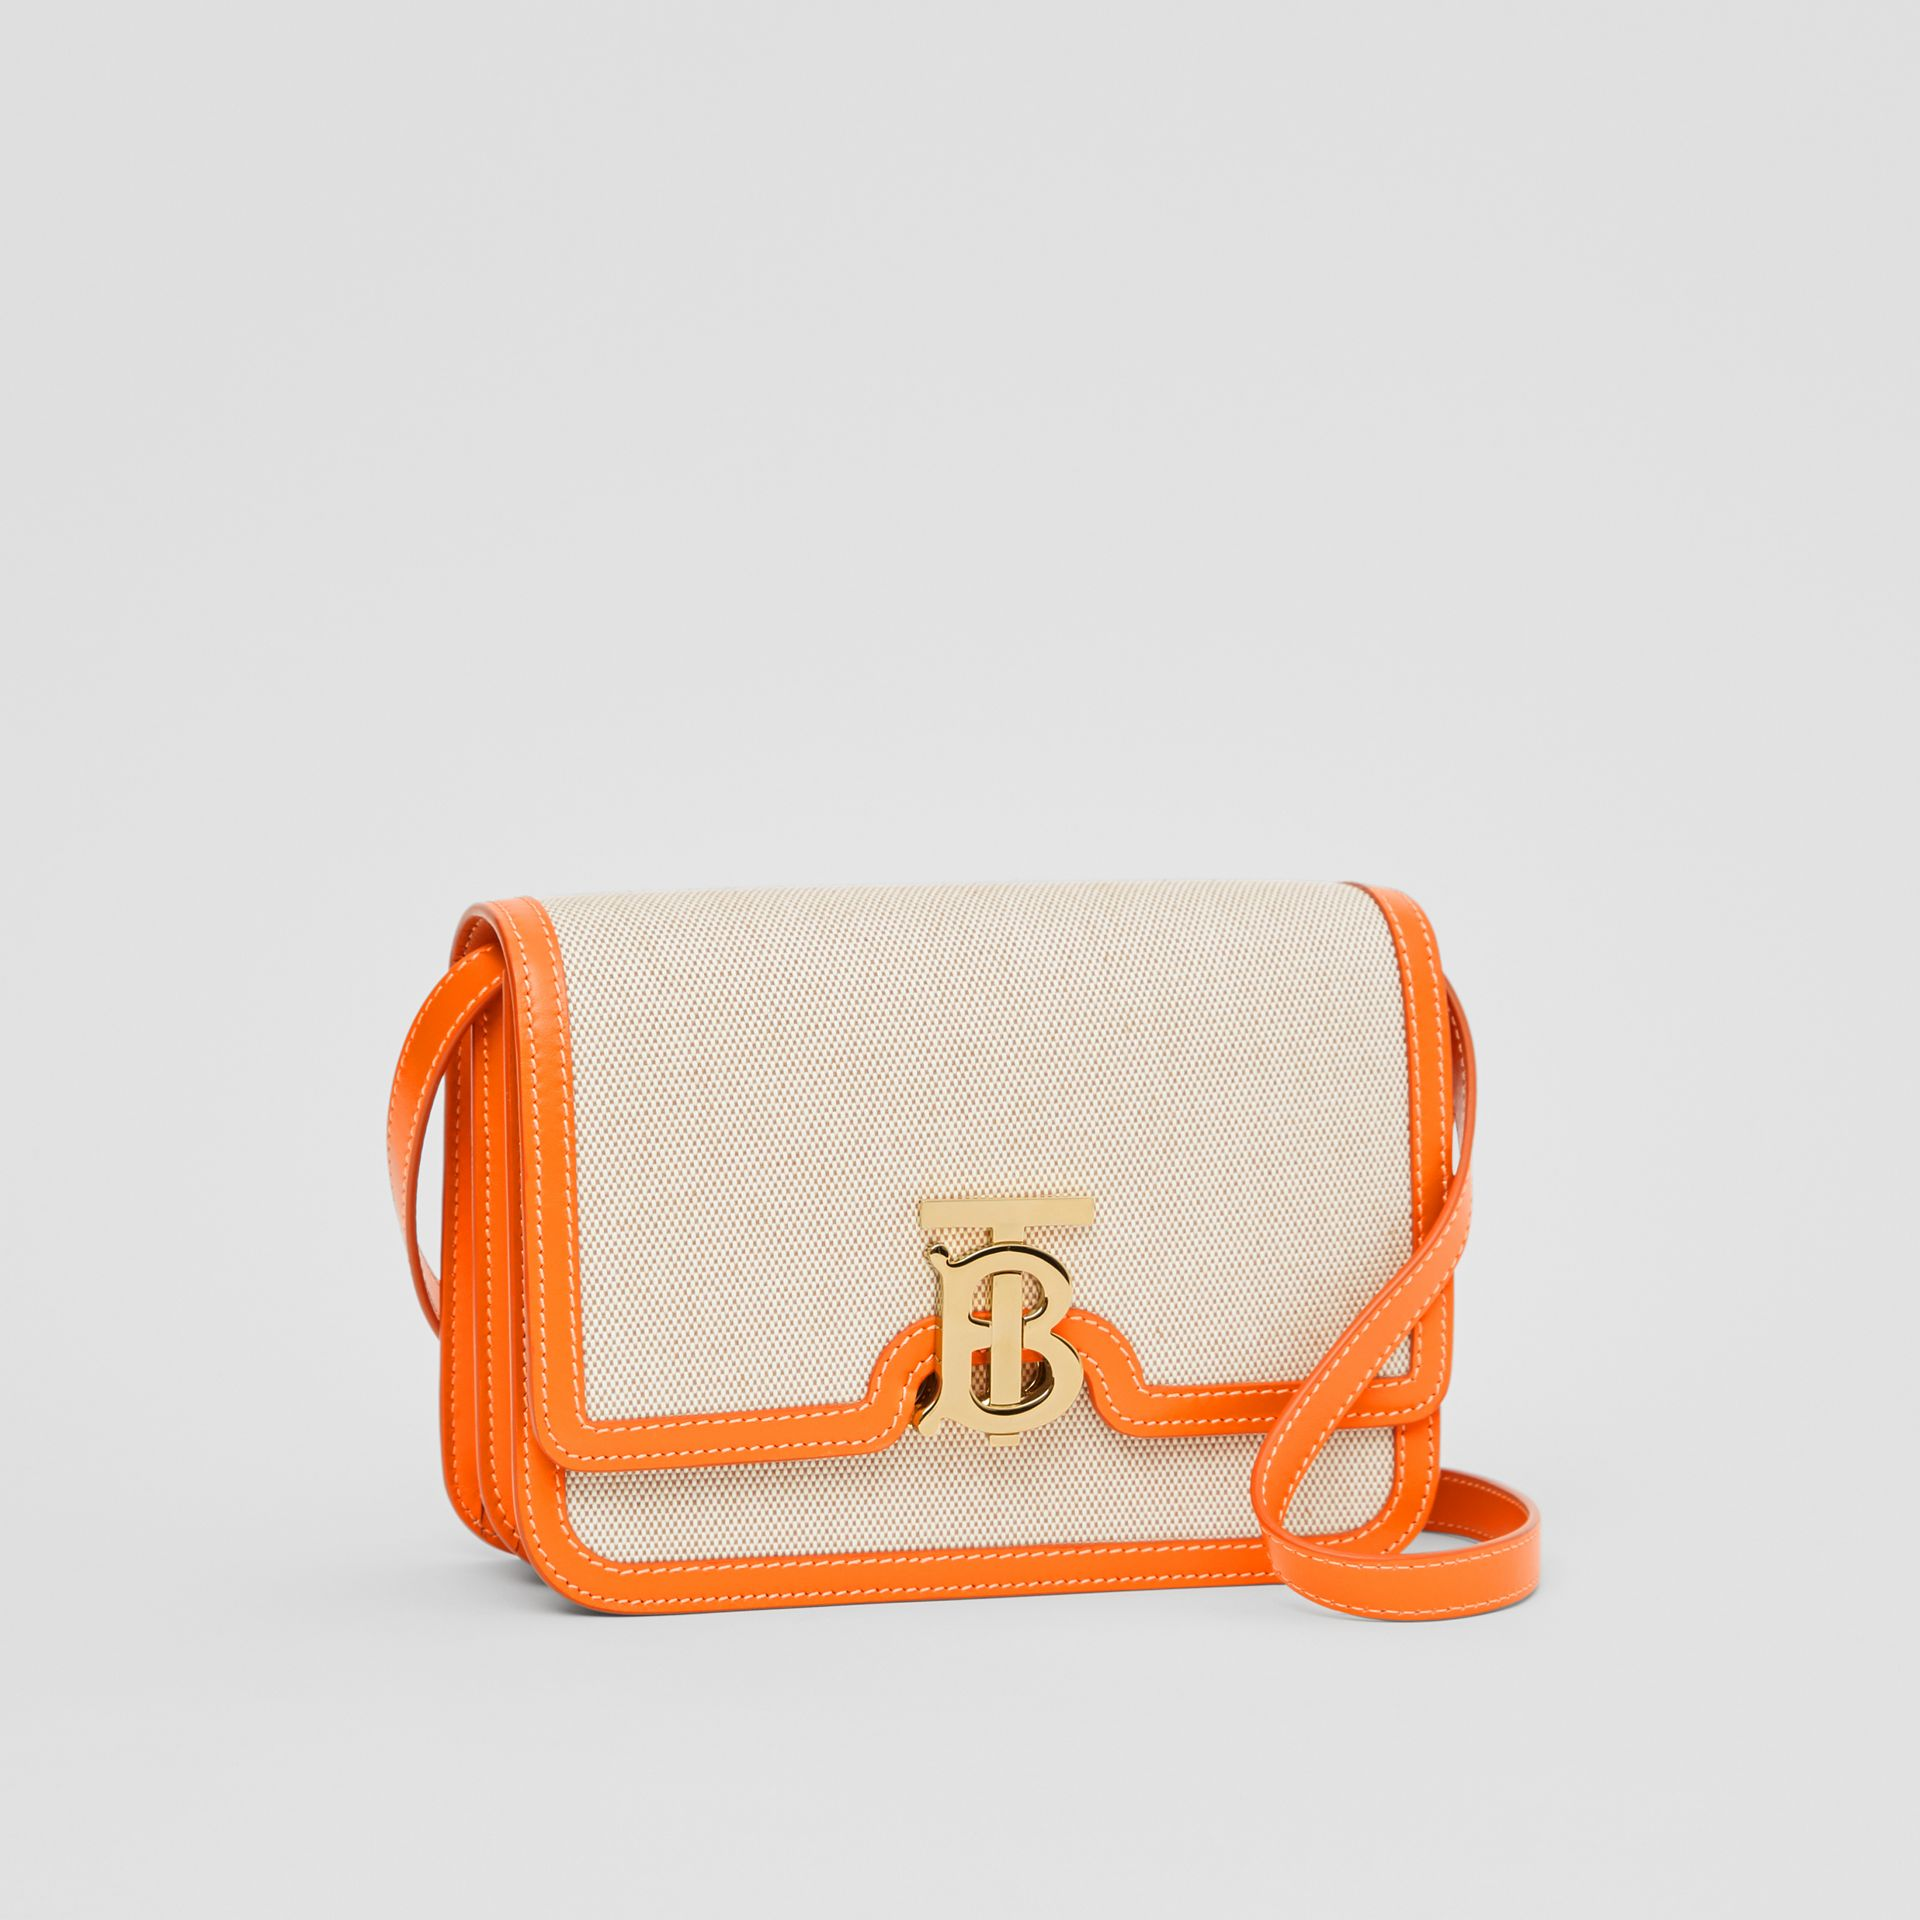 Small Two-tone Canvas and Leather TB Bag in Orange - Women | Burberry - gallery image 4